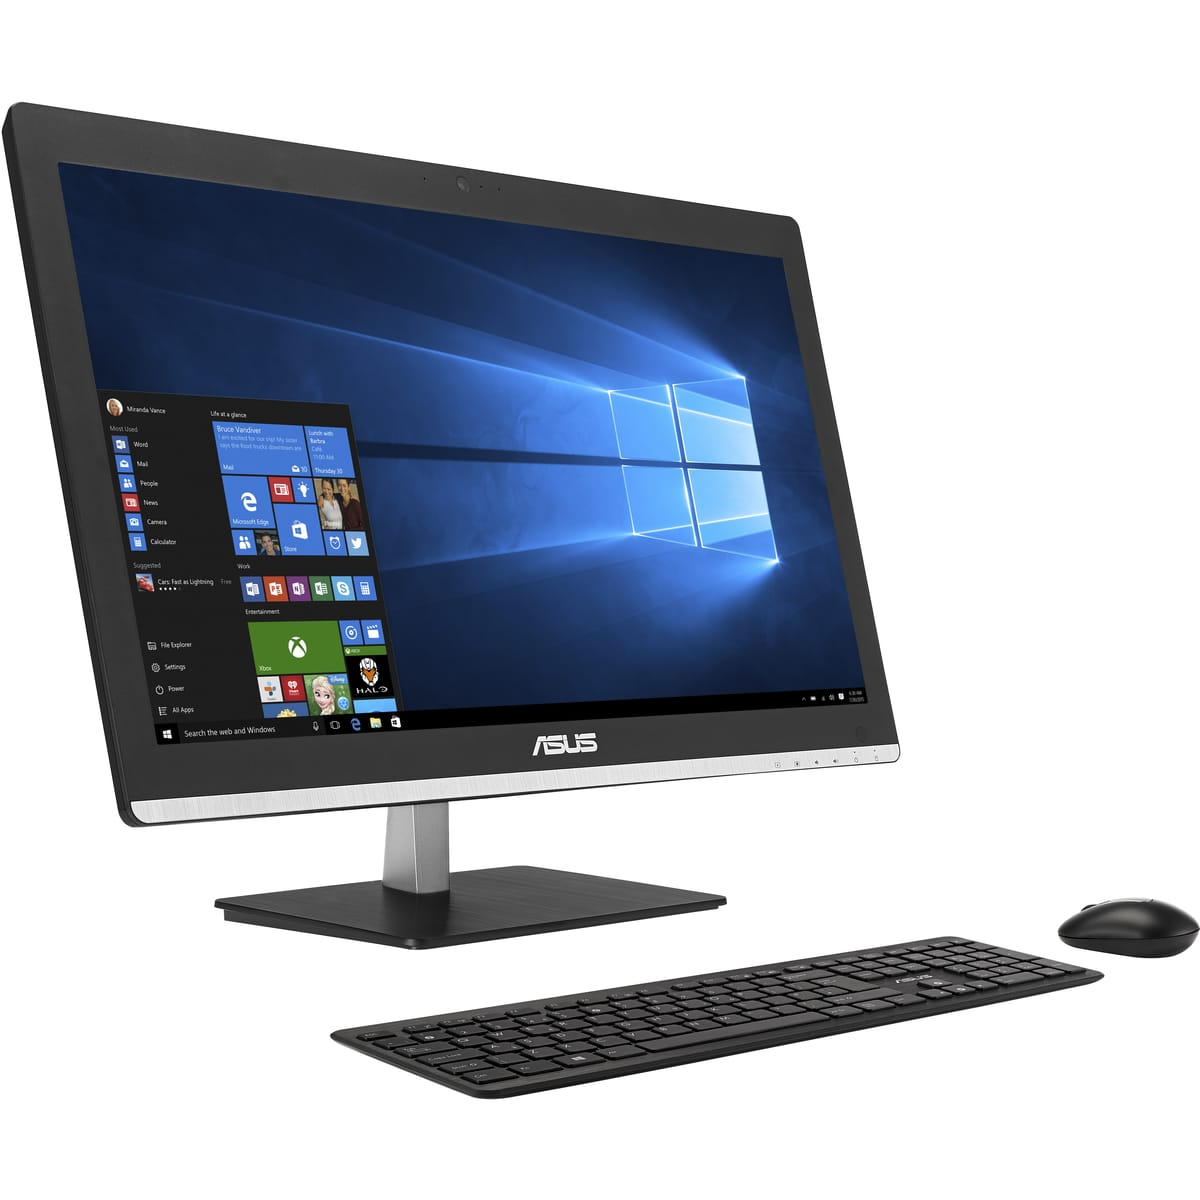 Asus Ordinateur All In One V220iagk Ba001x Pas Cher